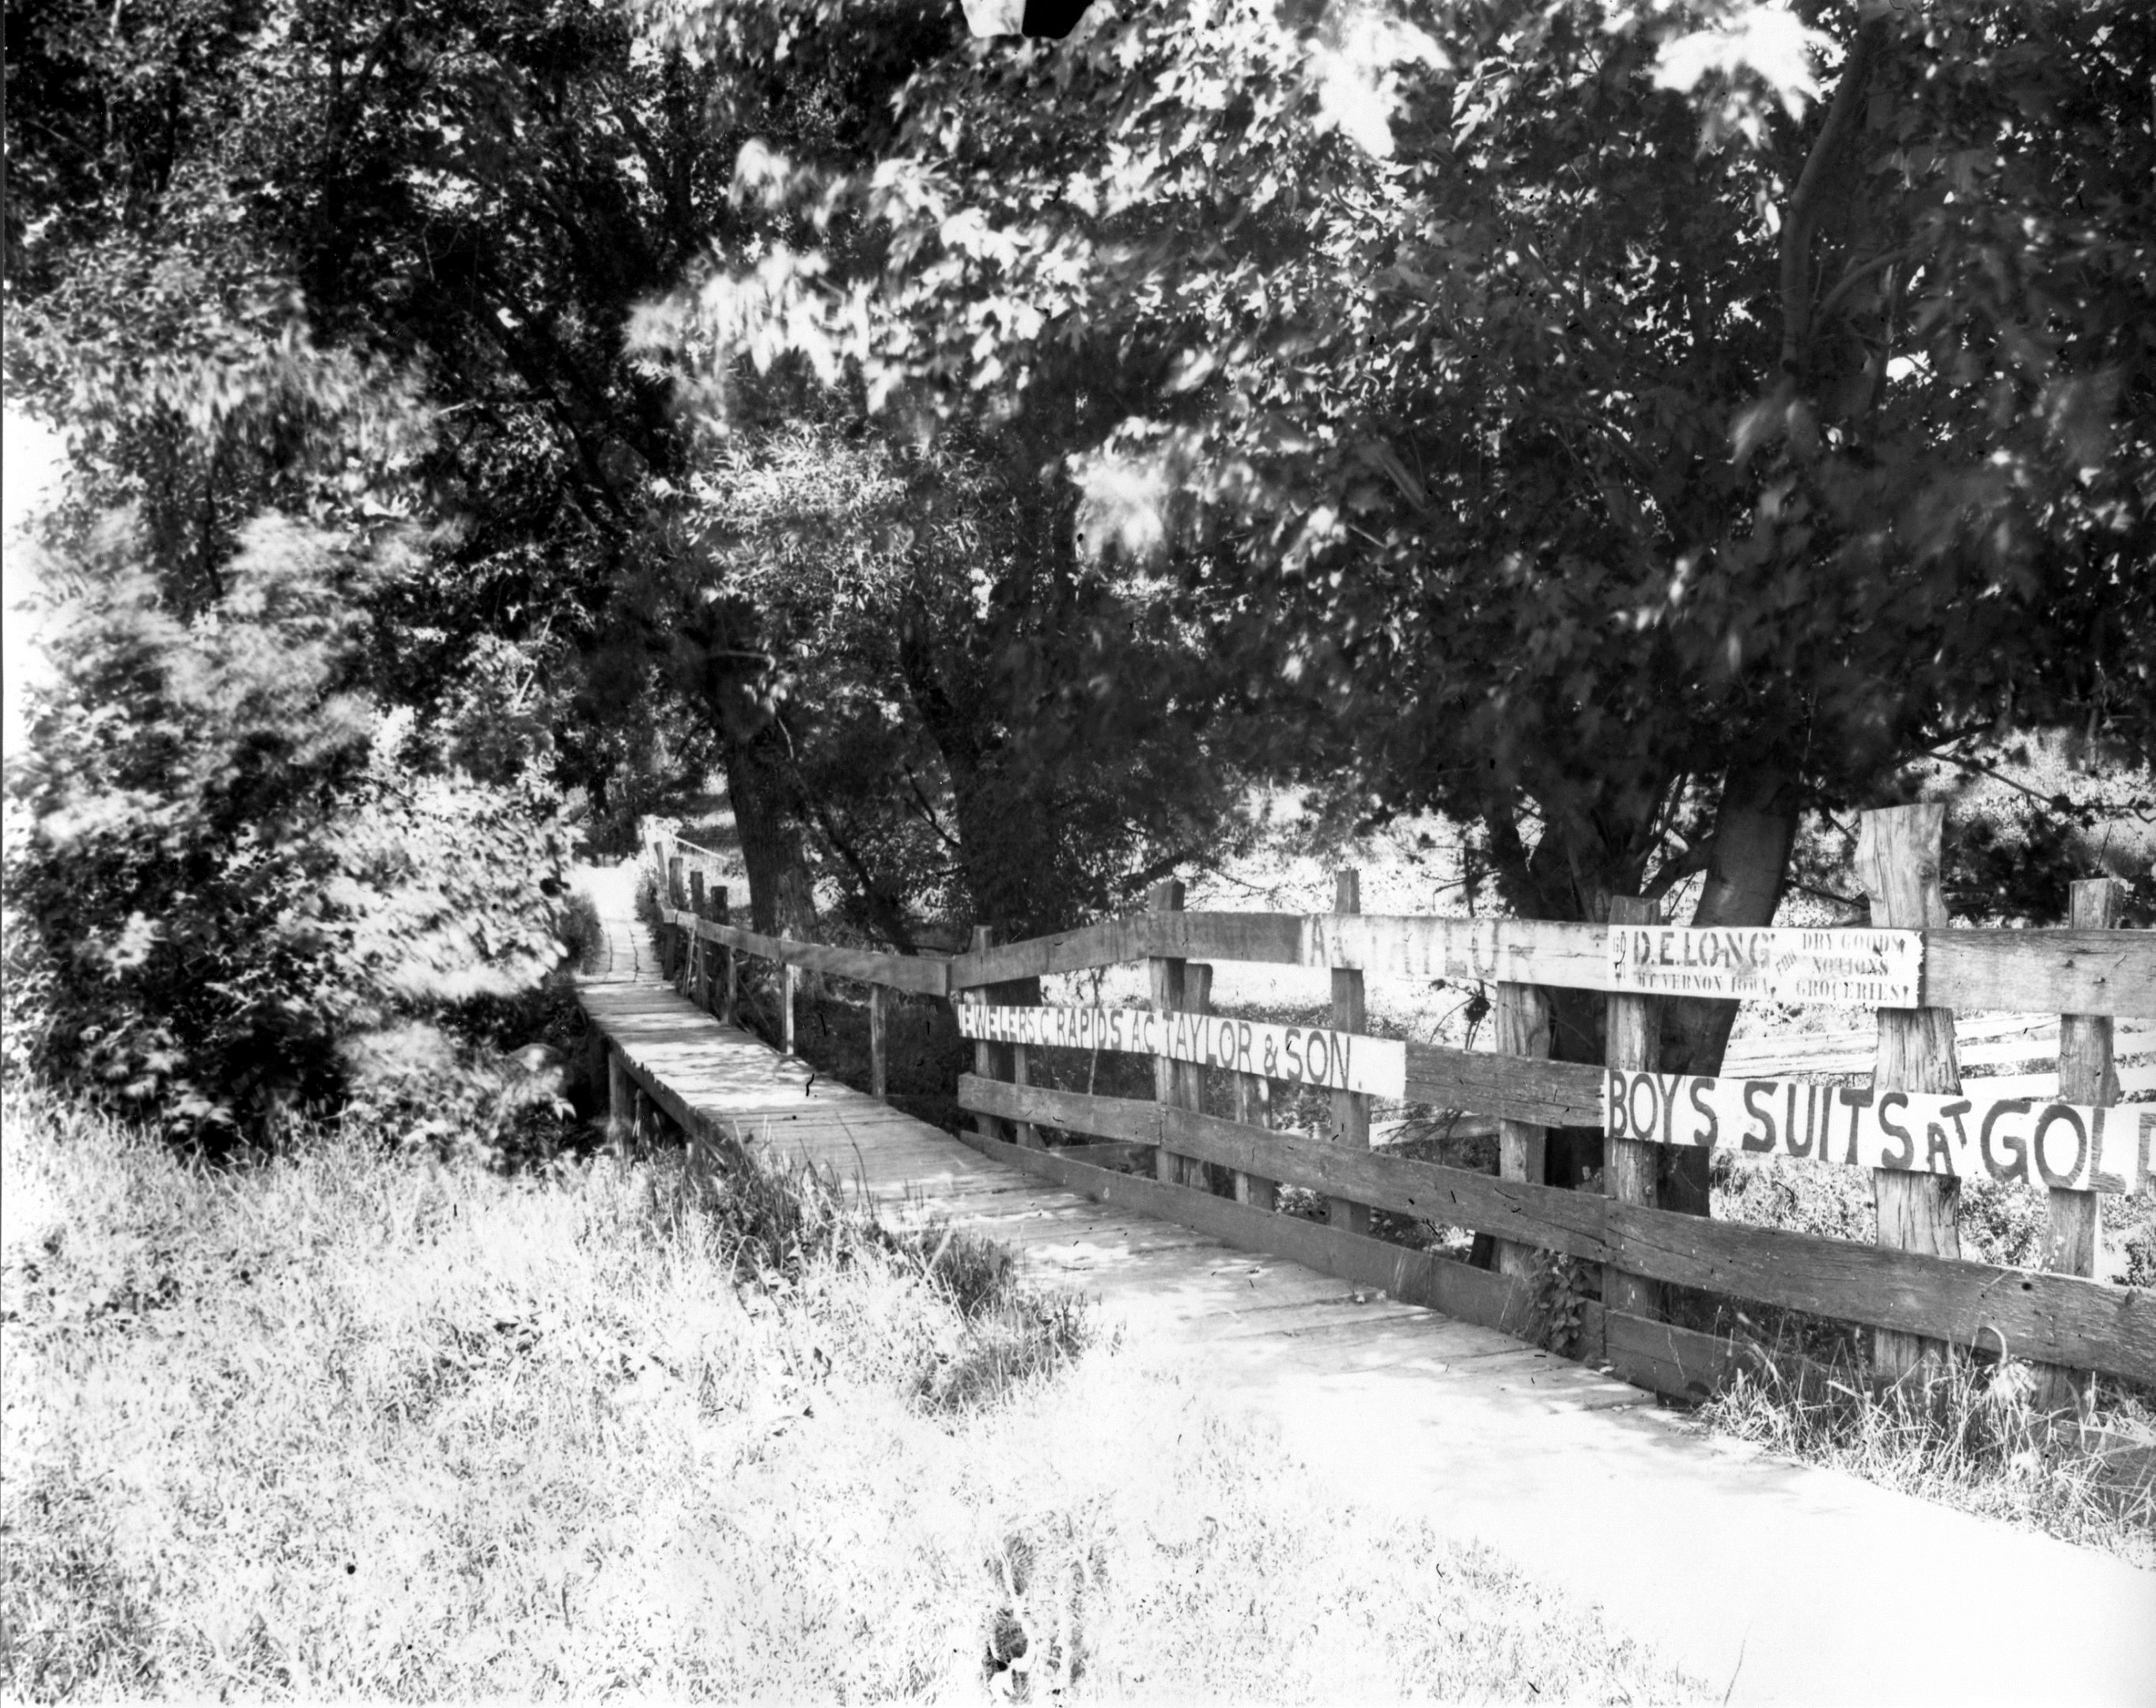 photo of Boardwalk with Advertisements